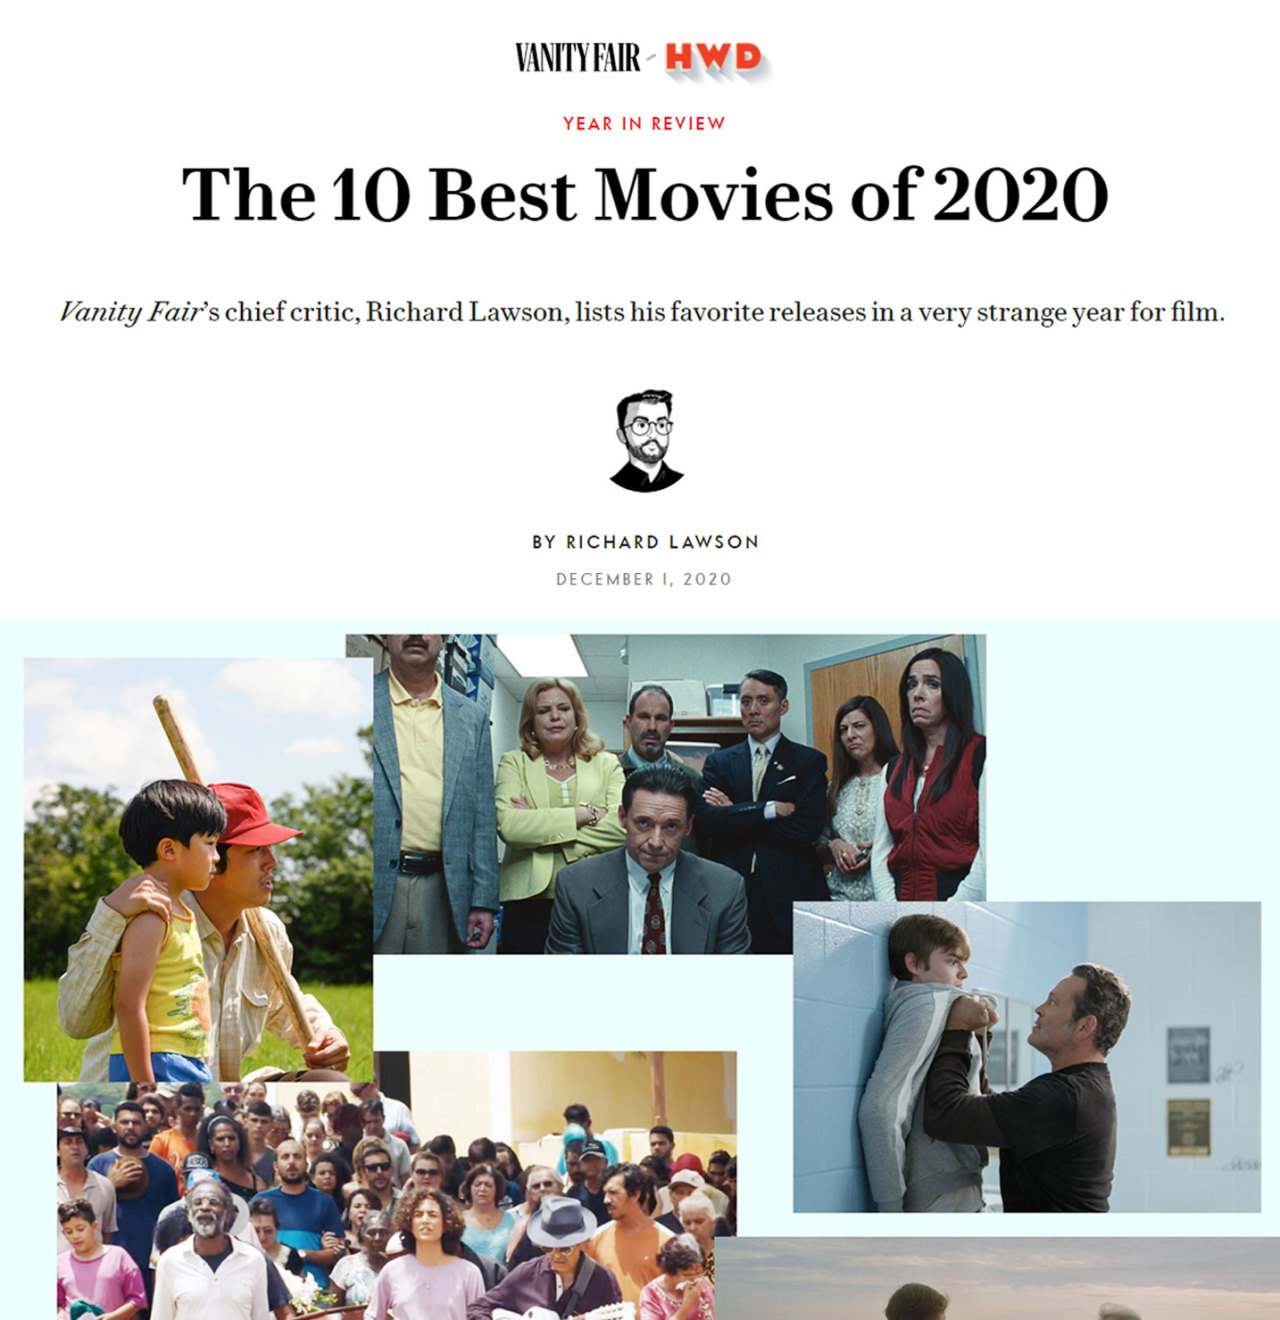 """Minari"" by director Lee Isaac Chung is selected among the ""10 Best Movies of 2020"" by Vanity Fair. (Vanity Fair)"